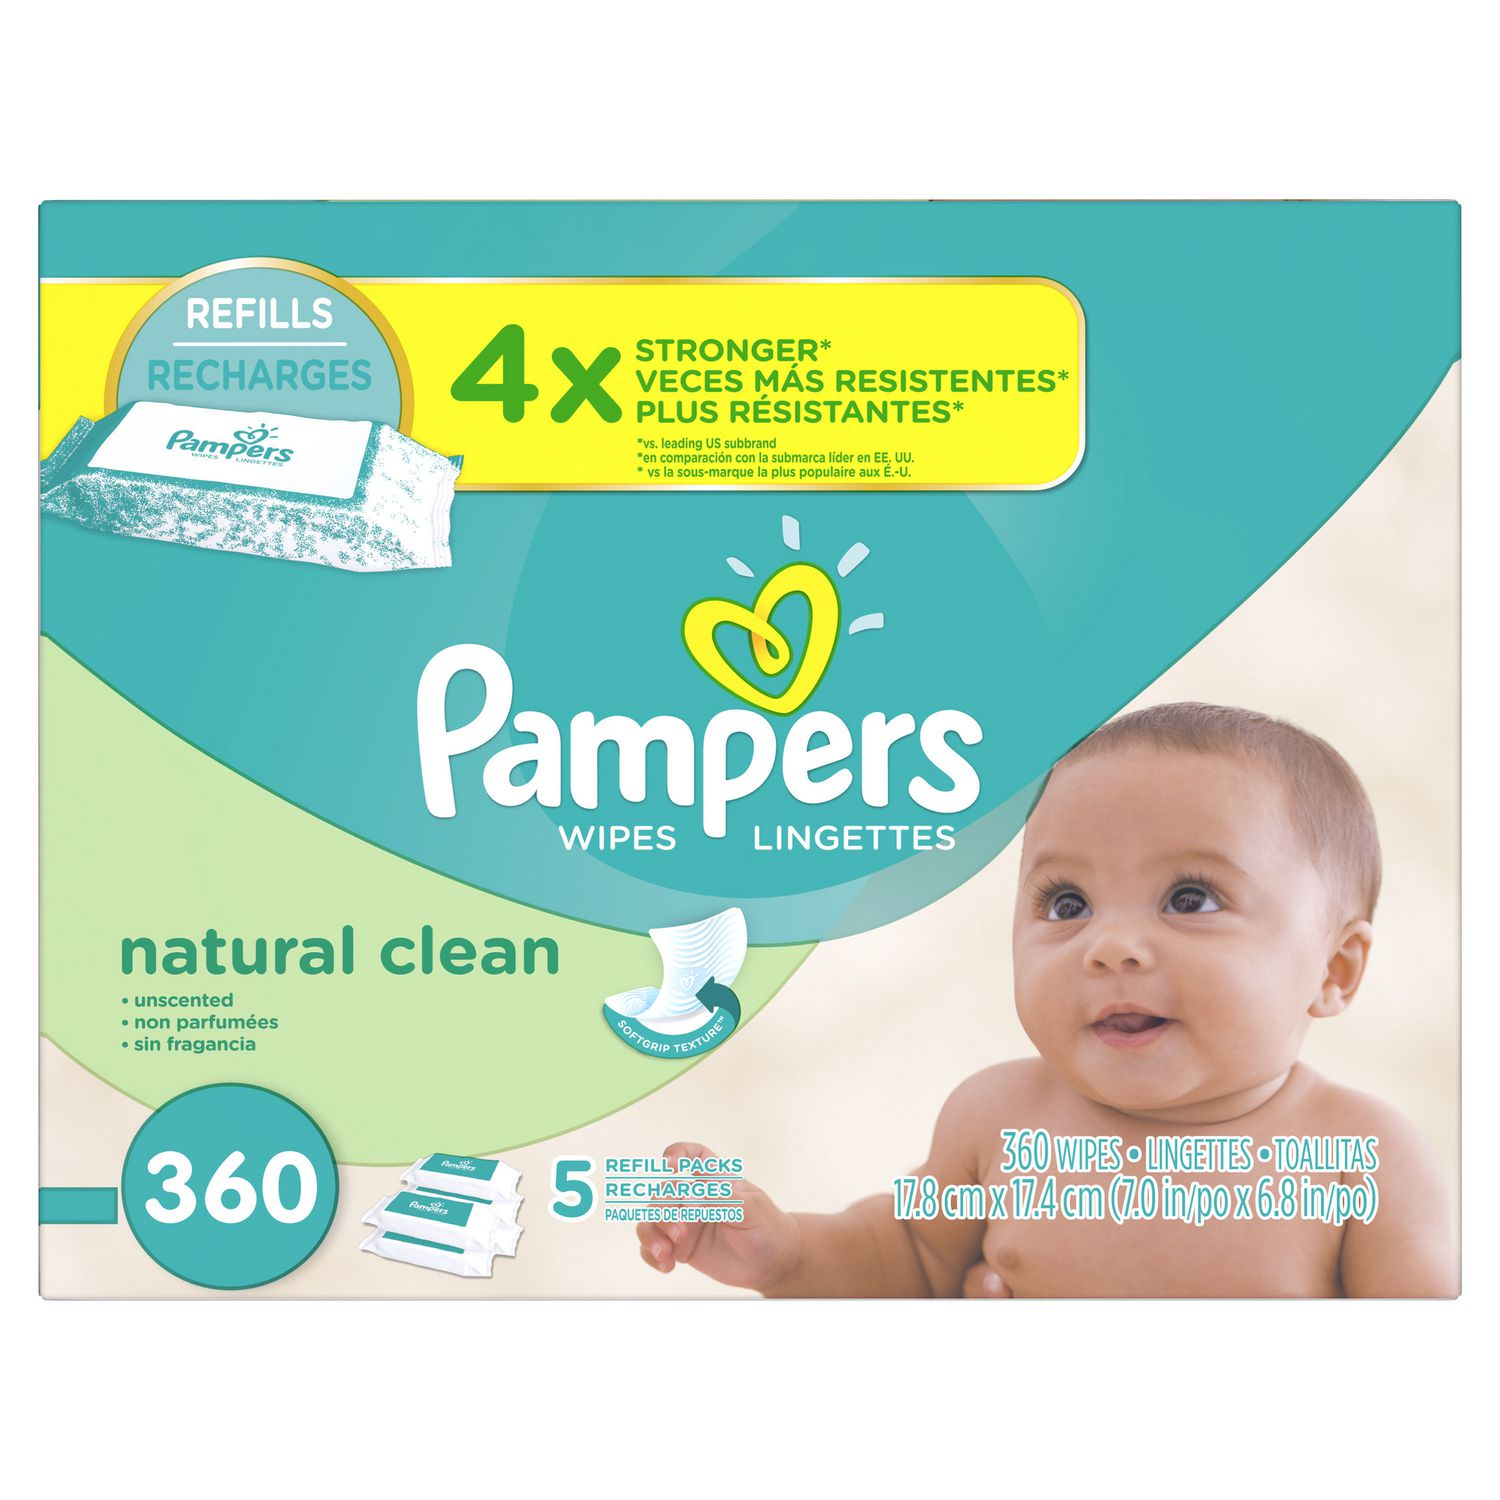 Pampers Baby Wipes Natural Clean 5x Refill Walmart Canada